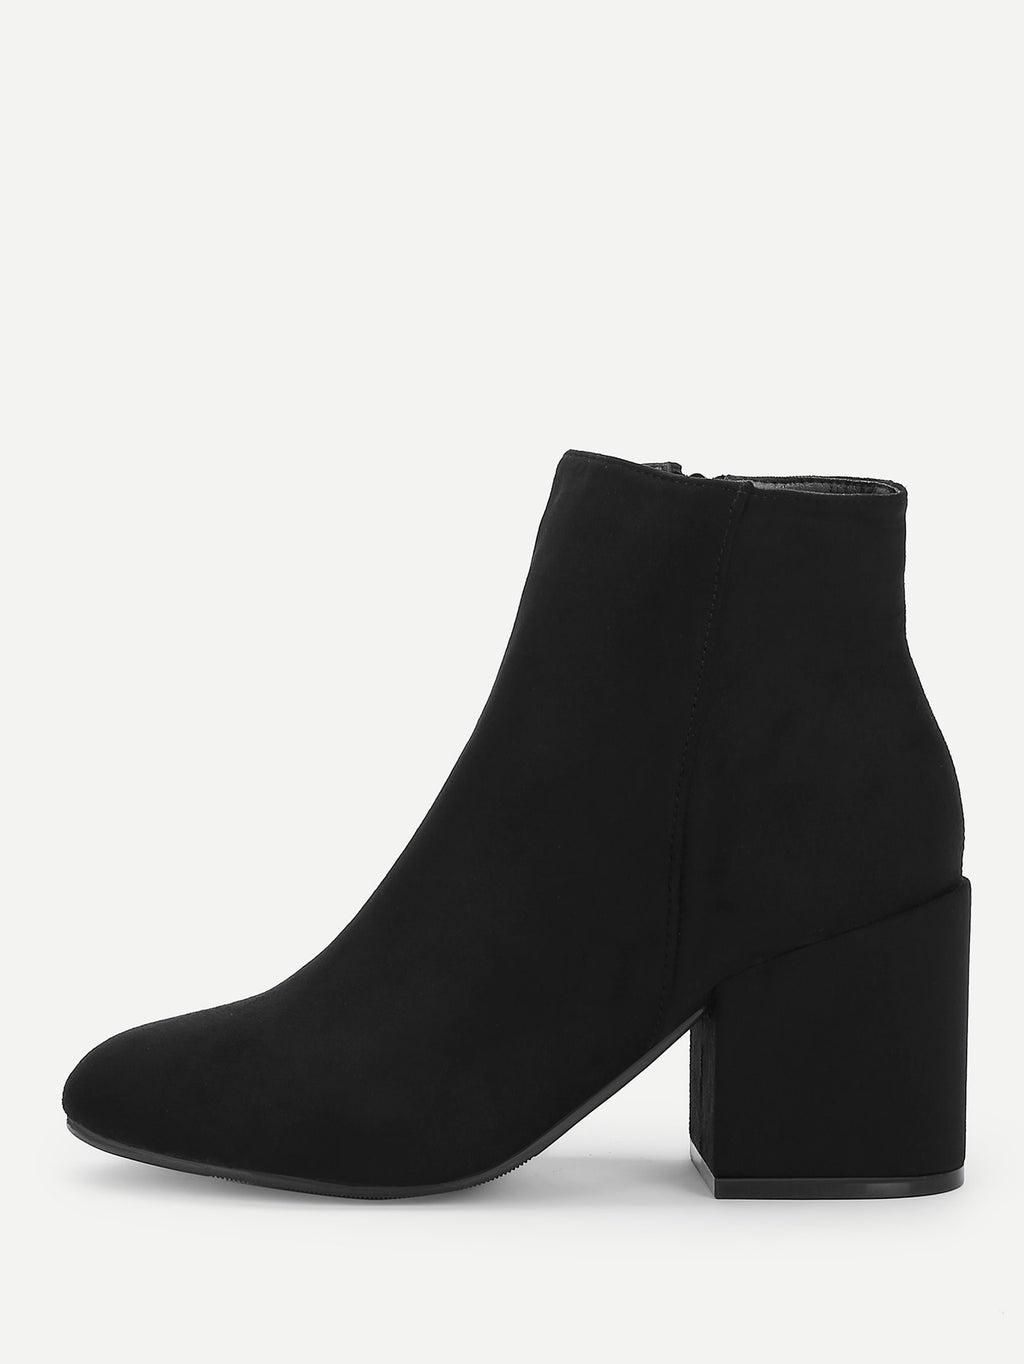 Formal Boots - Plain Block Heeled Ankle Boots